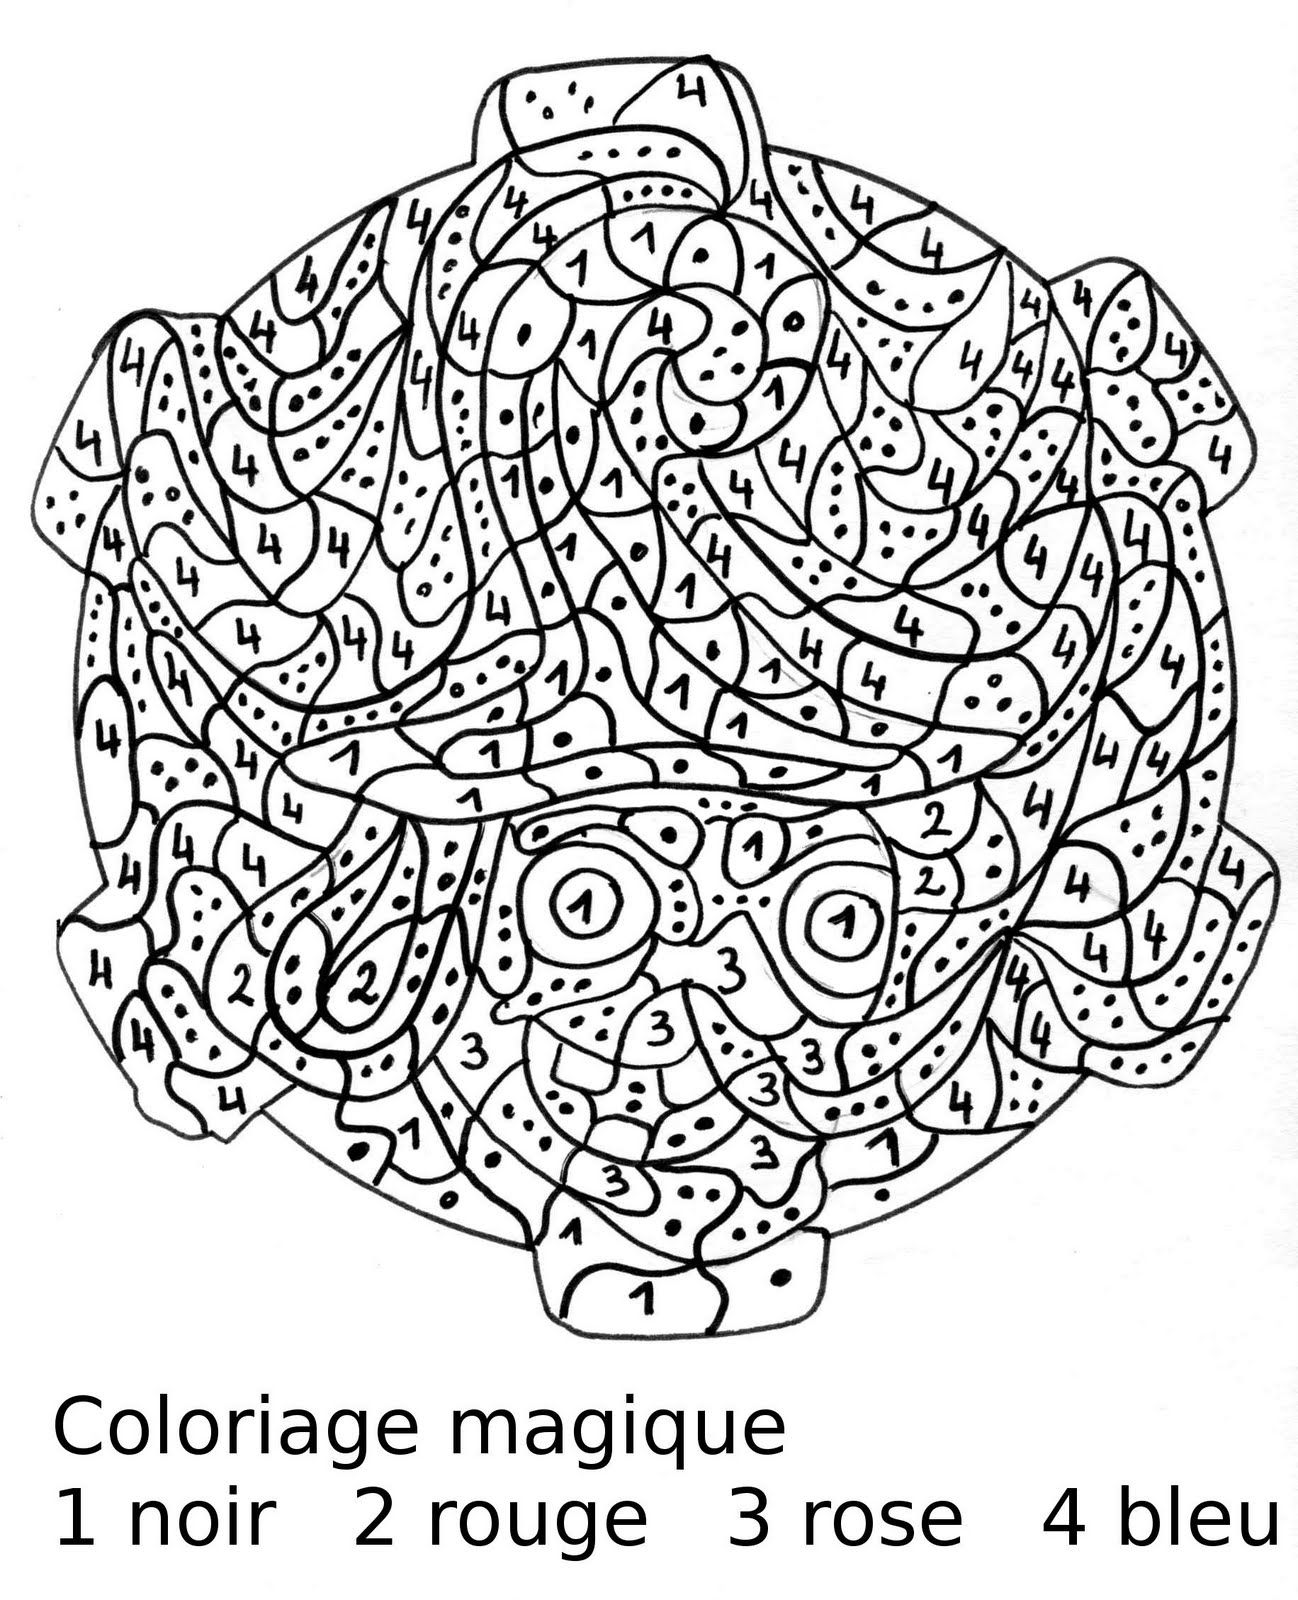 Coloriage Difficile Gs.Coloriage Magique Halloween Imprimer Goshowmeenergy Bali Color